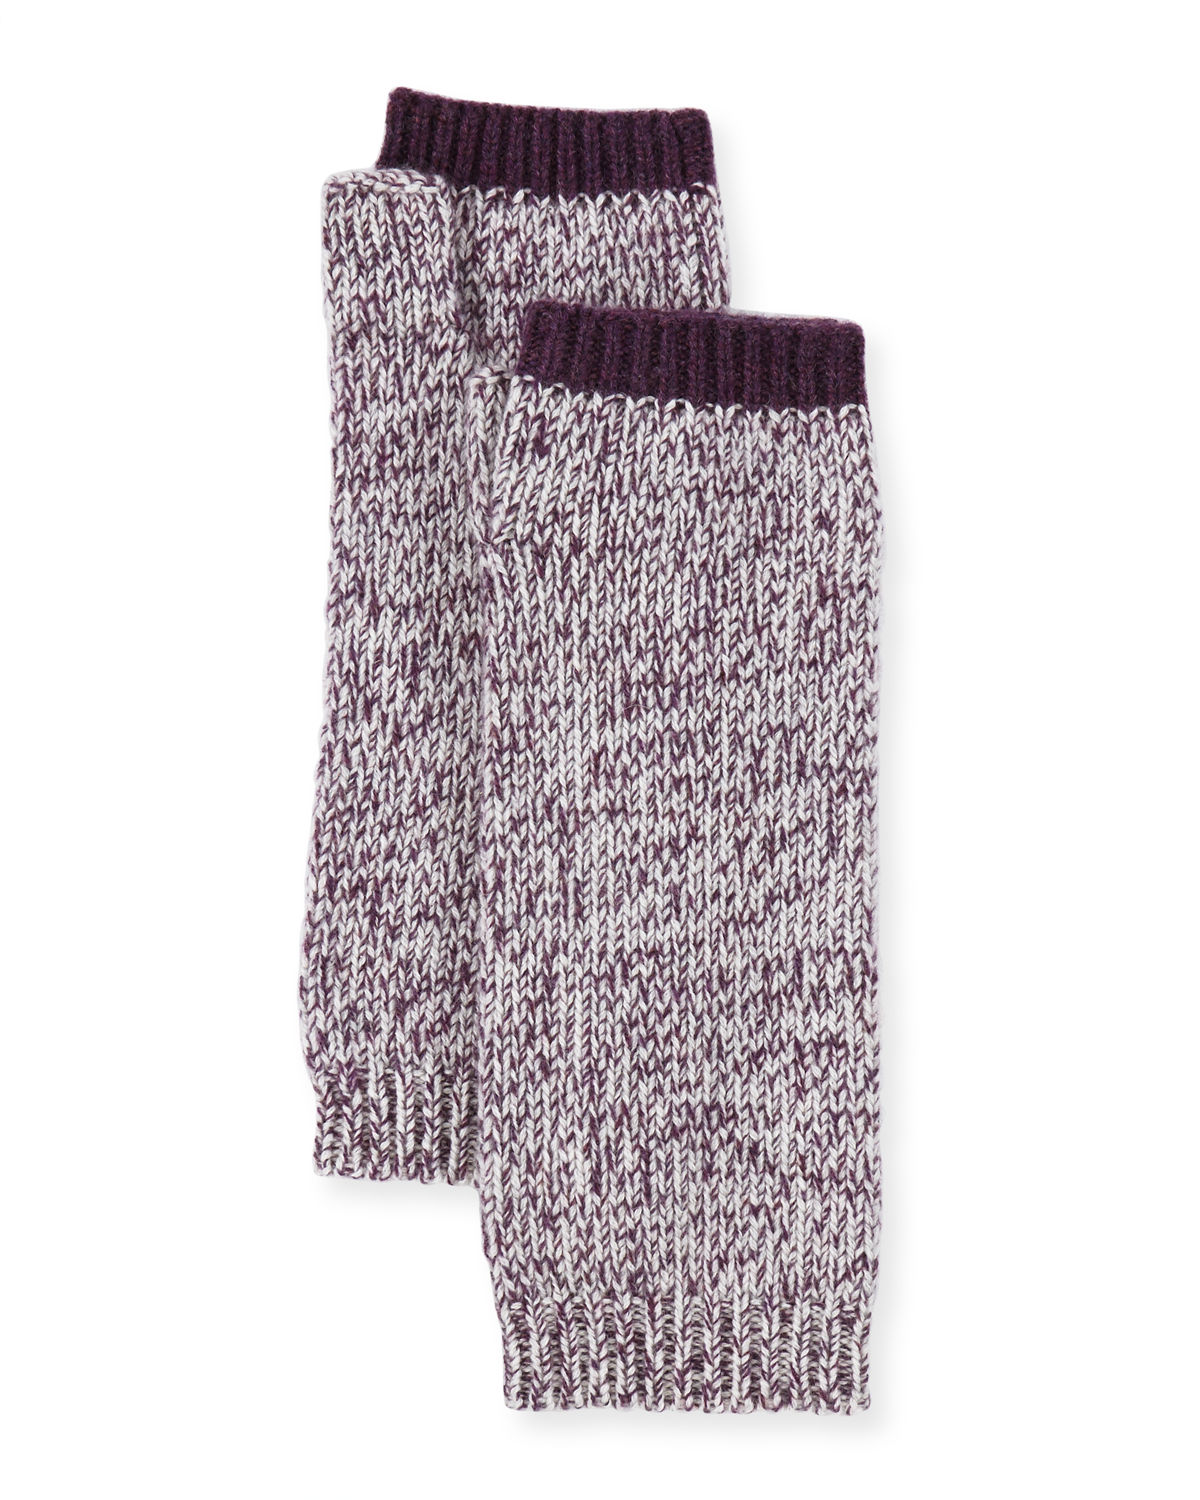 Marled Cashmere Fingerless Gloves/Arm Warmers